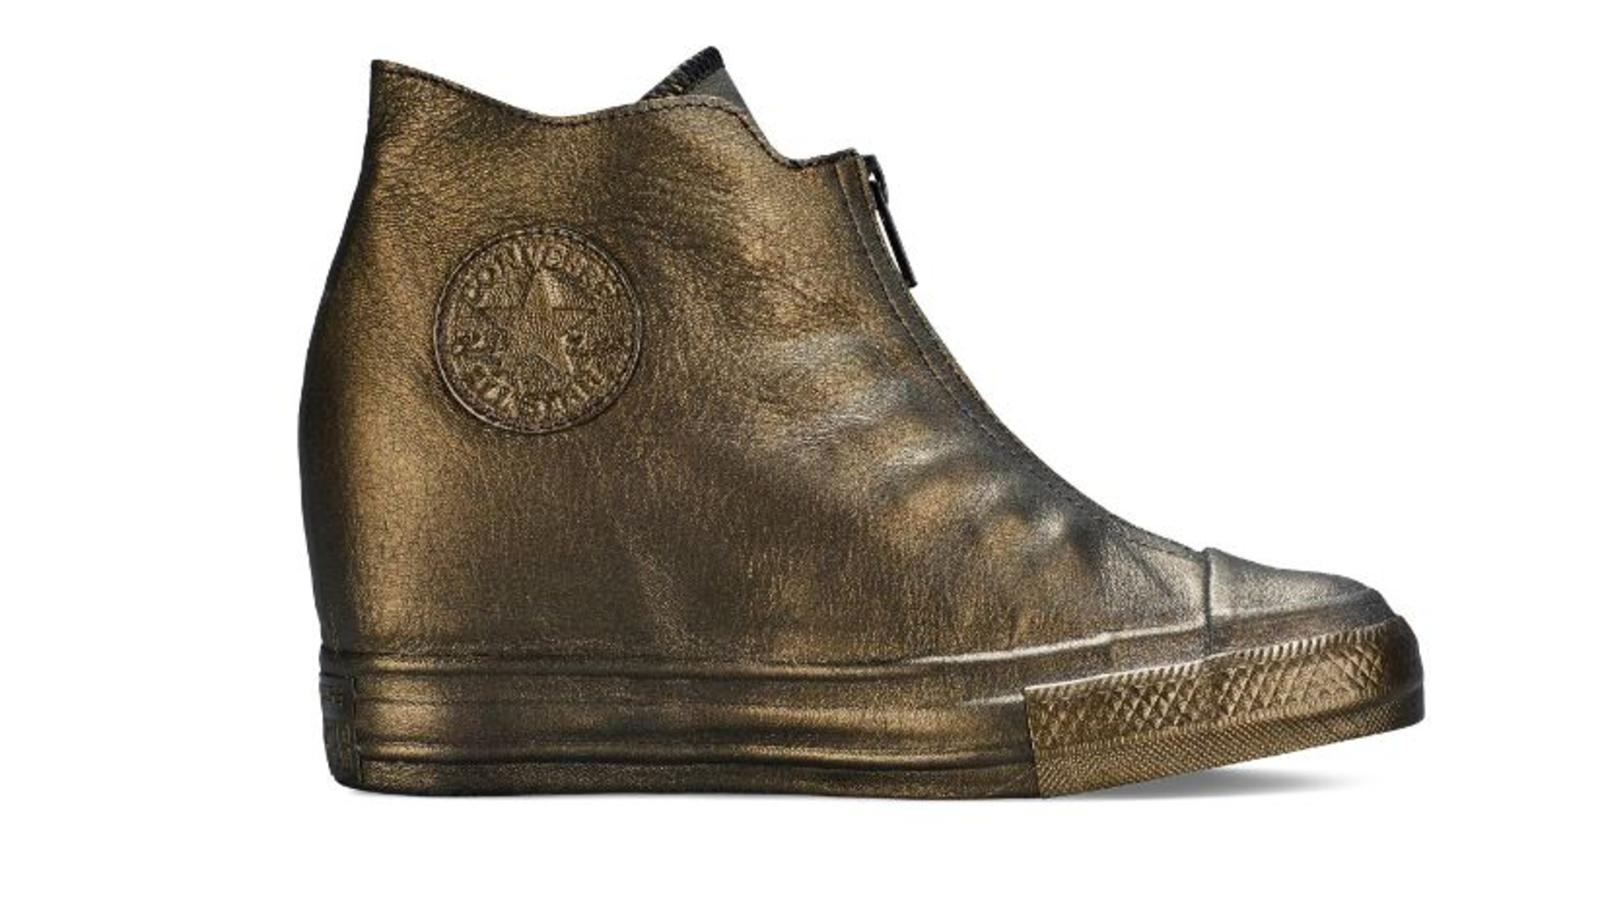 dfa3808ed008 CONVERSE CHUCK TAYLOR ALL STAR LUX WEDGE SHROUD - Nike News